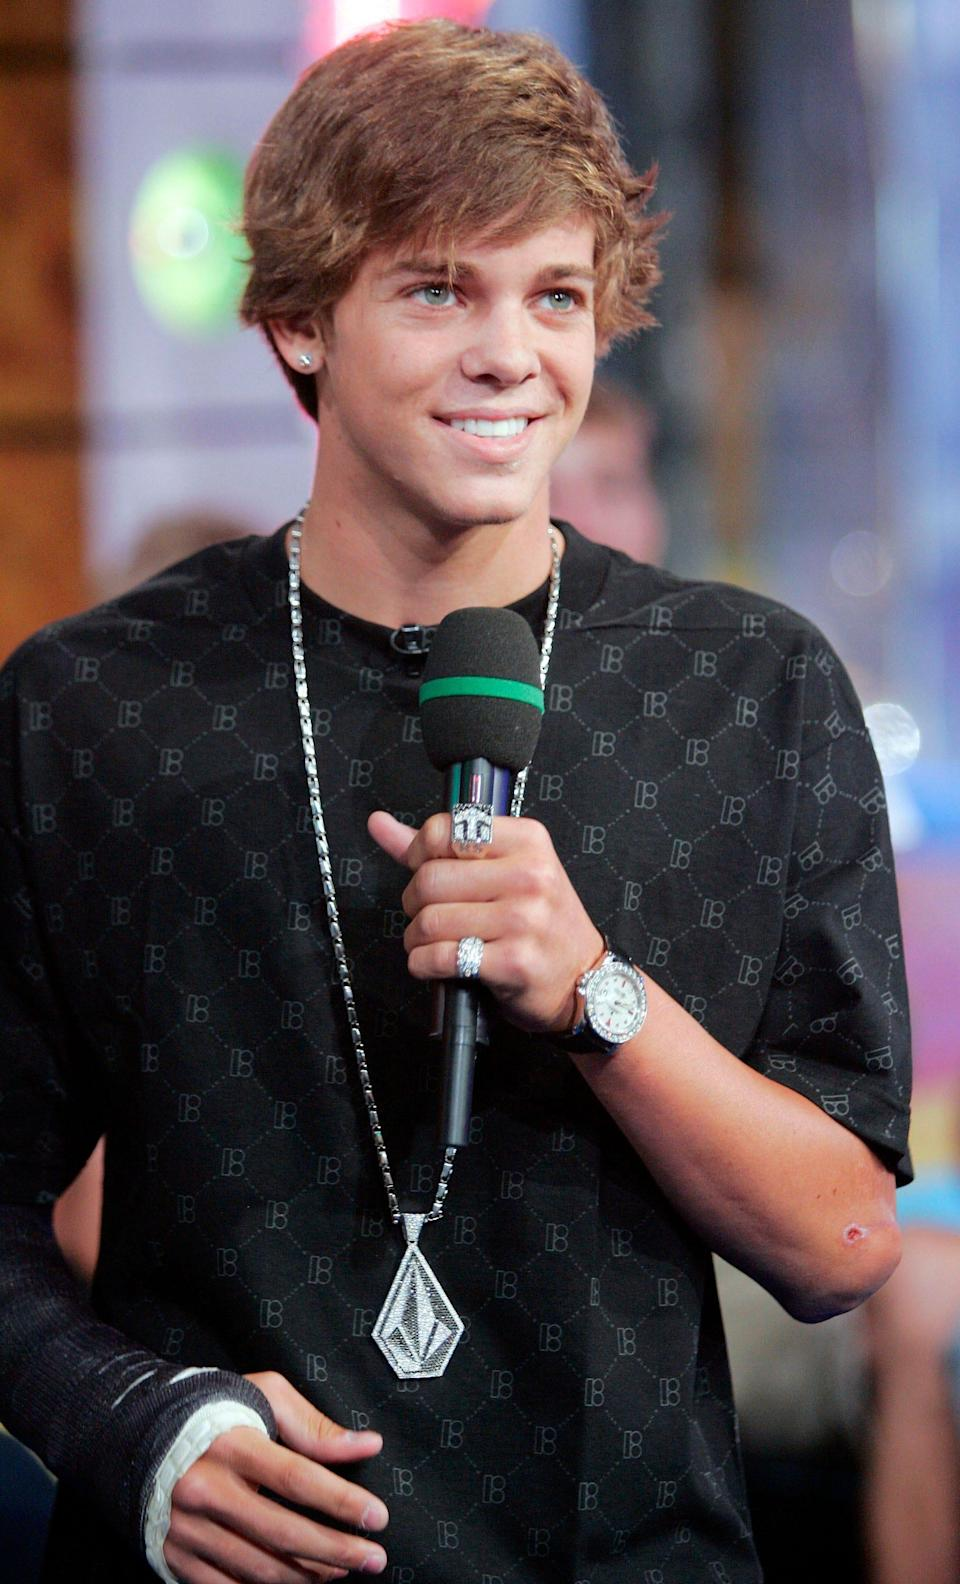 """Skatboarder Ryan Sheckler appears on MTV's """"Total Request Live"""" Monday, Aug. 27, 2007 in New York."""